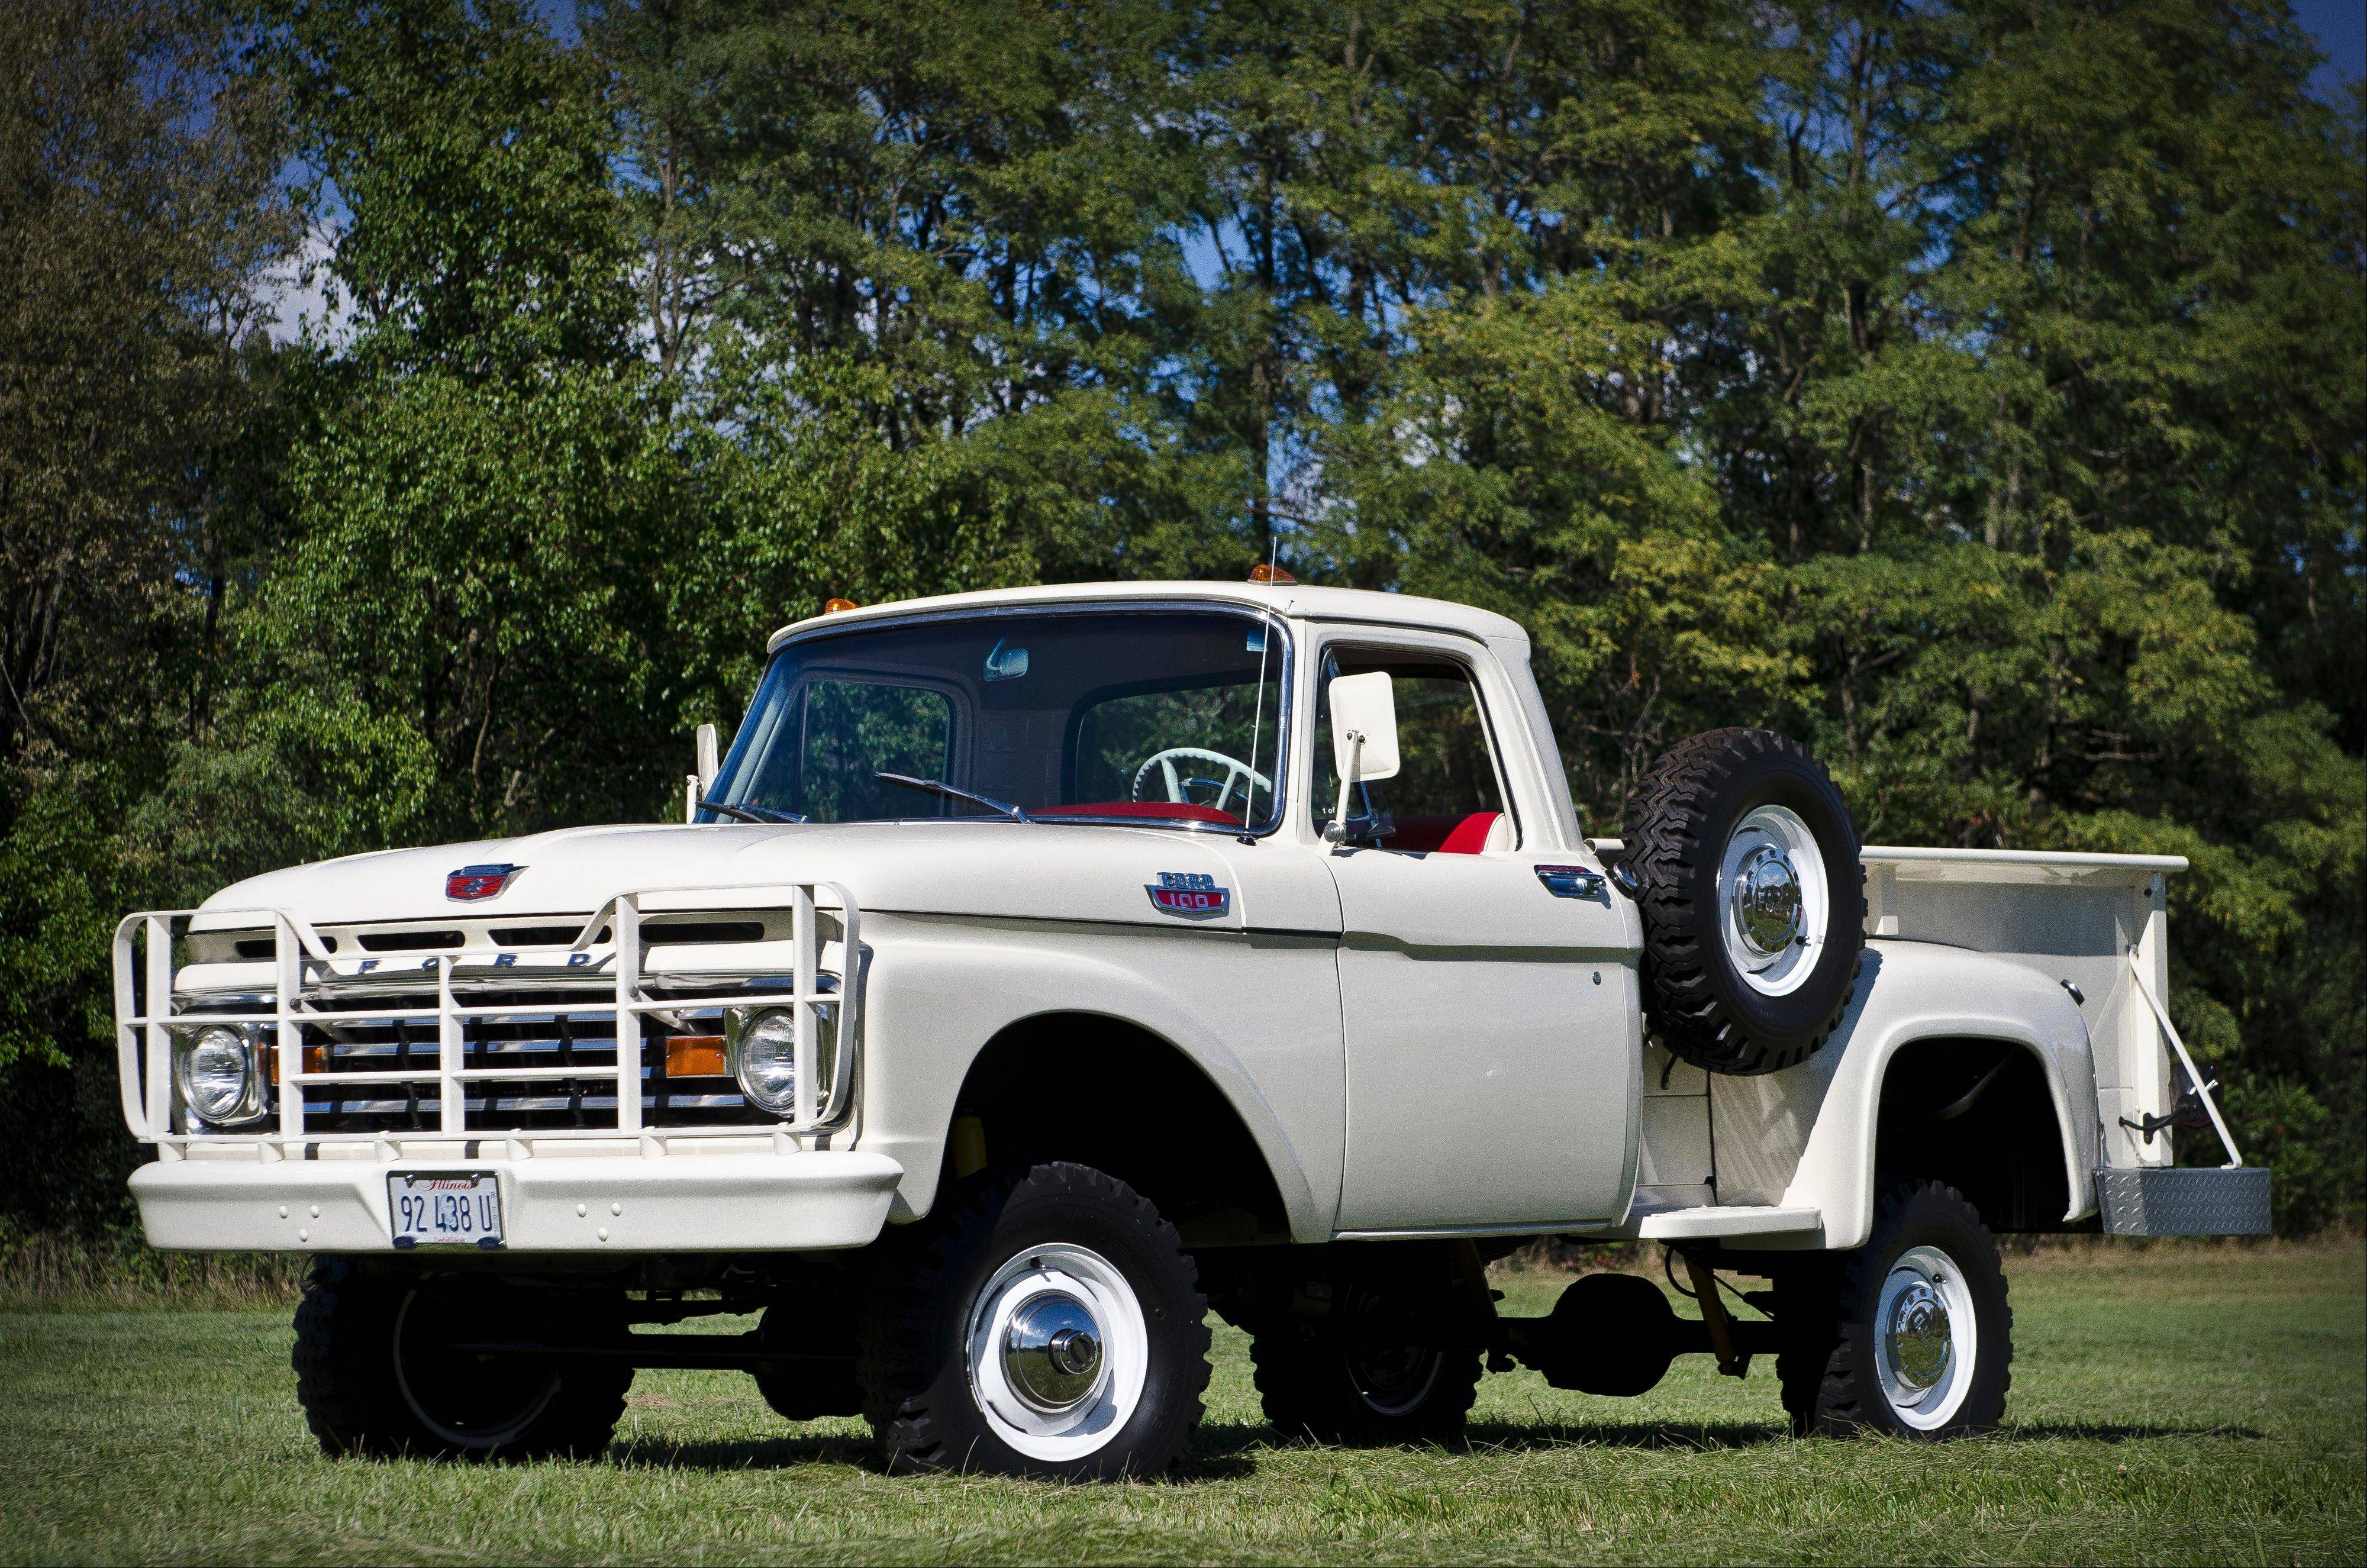 1963 Ford F100 4X4 Larry & Michelle Hunkele, Aurora